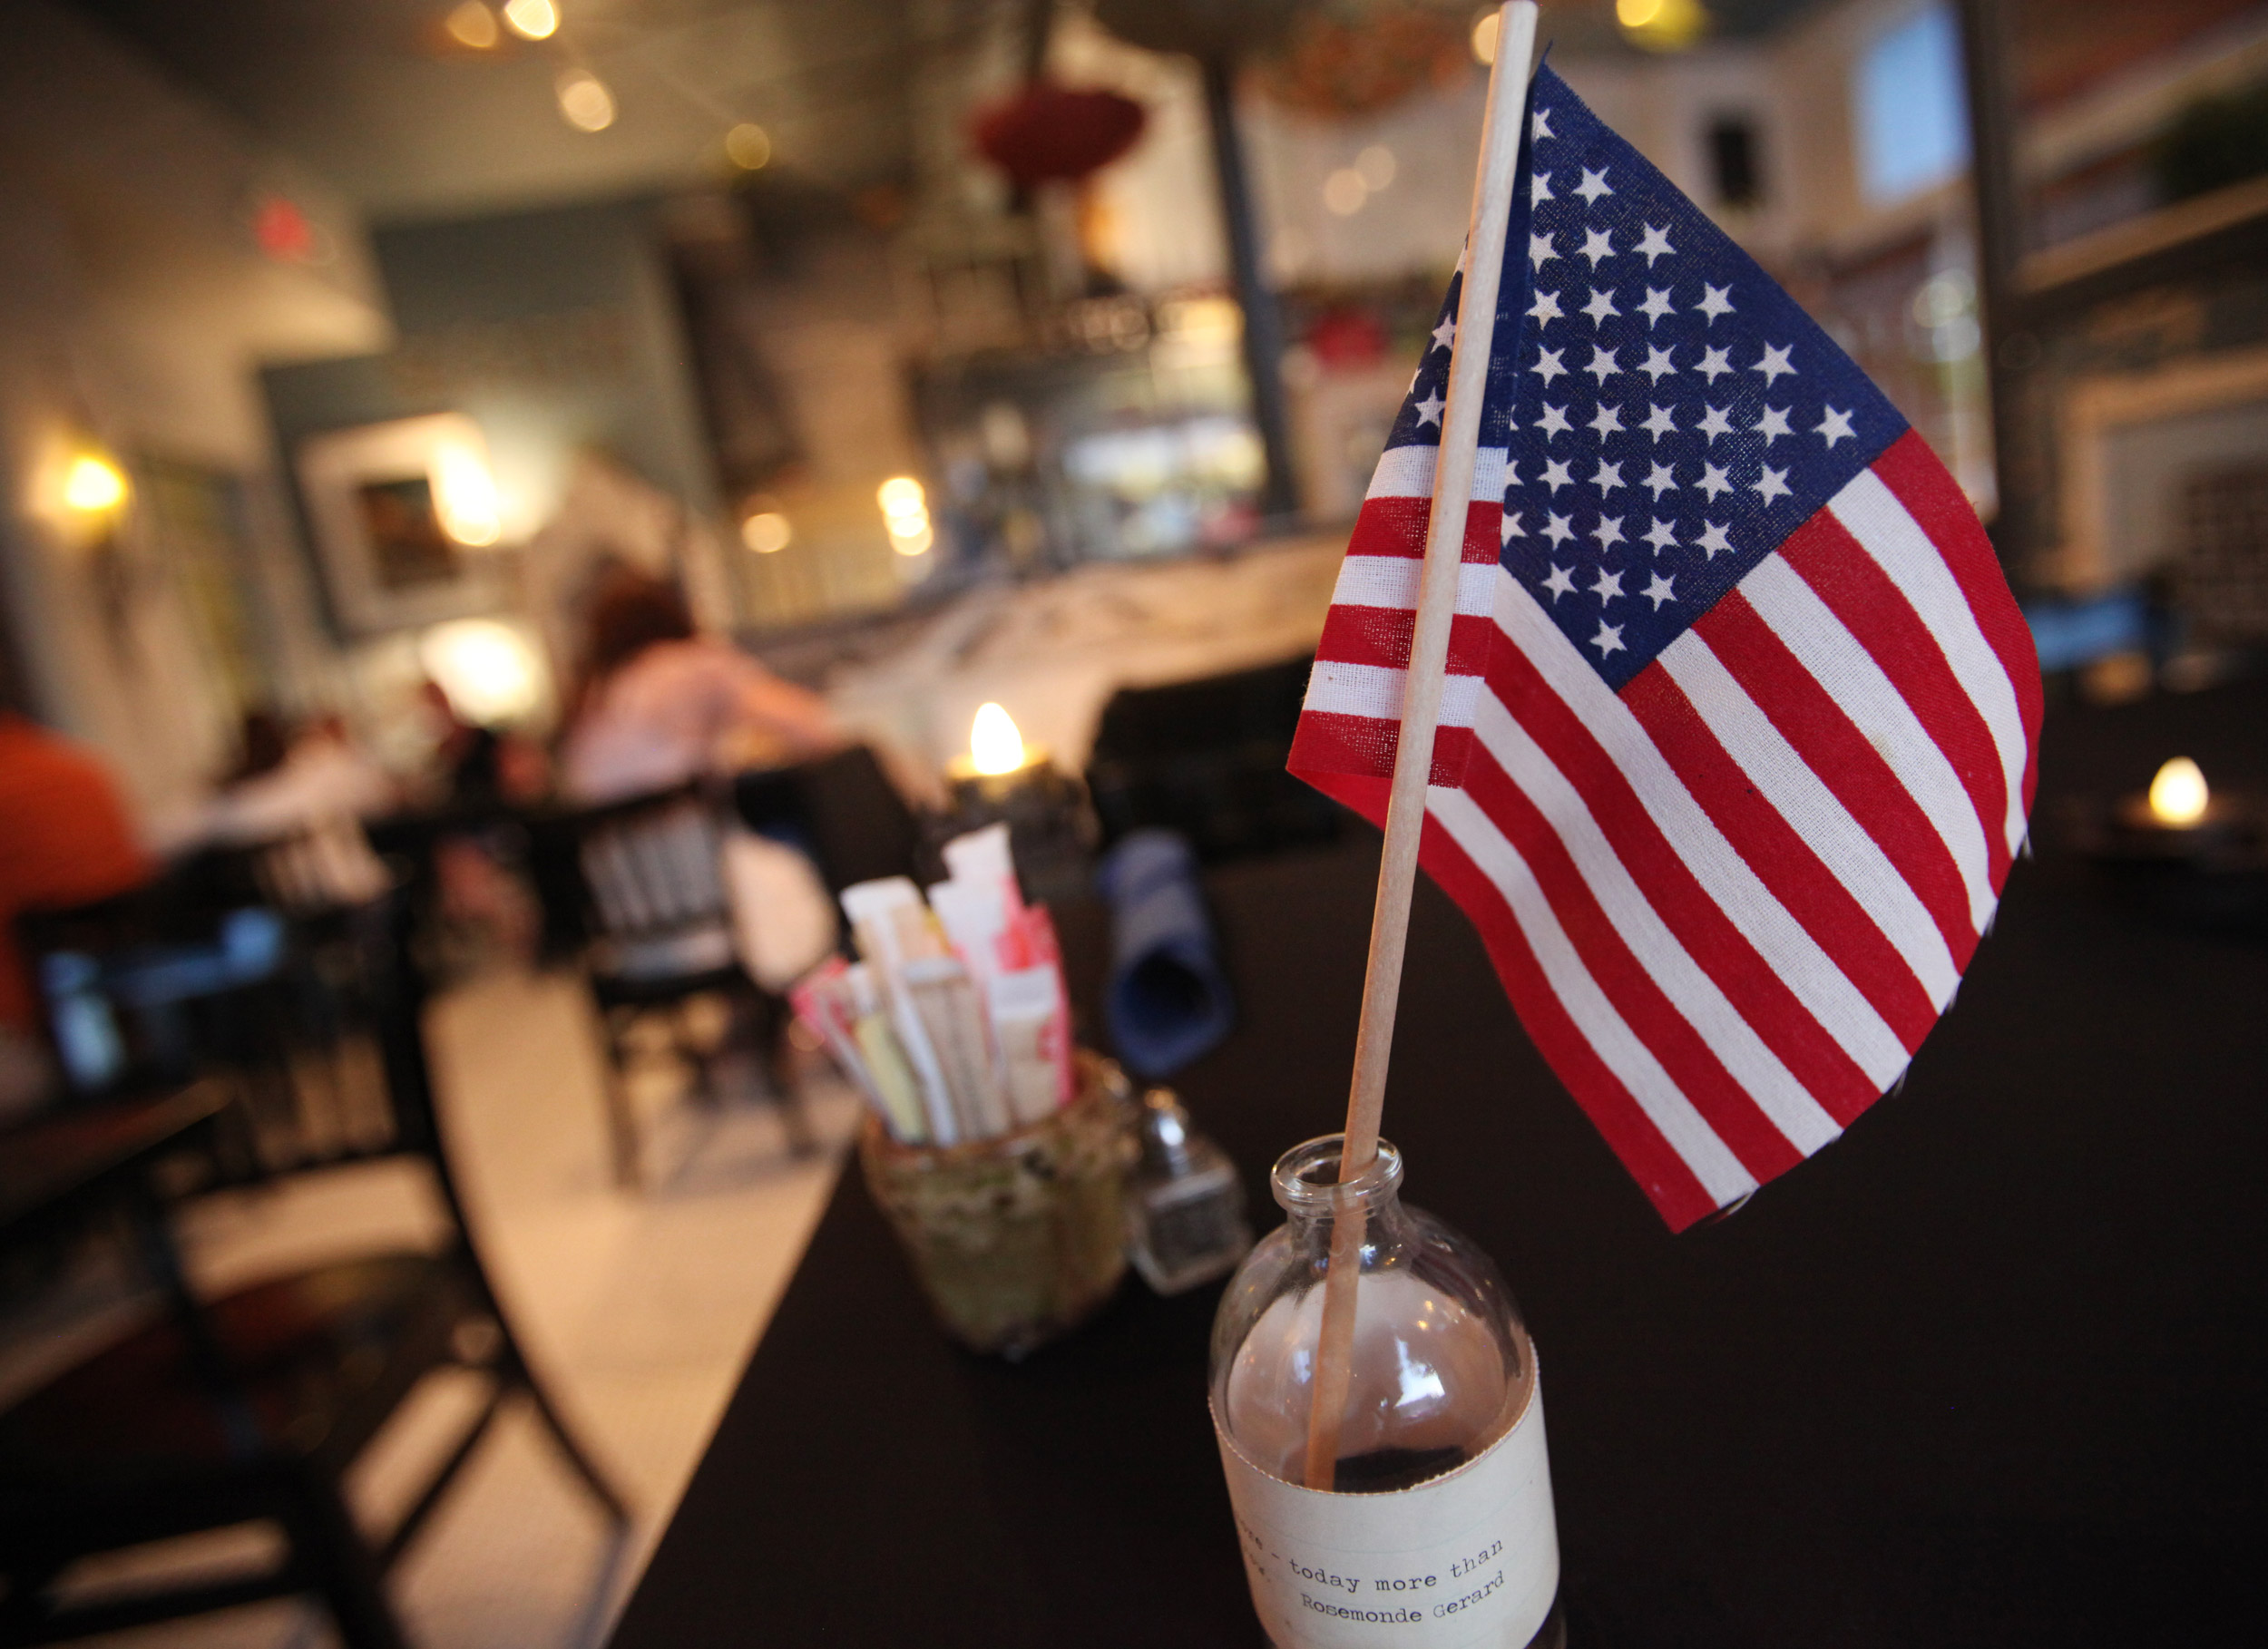 Tiny American flags adorn the tables at Aviary Cafe and Creperie.